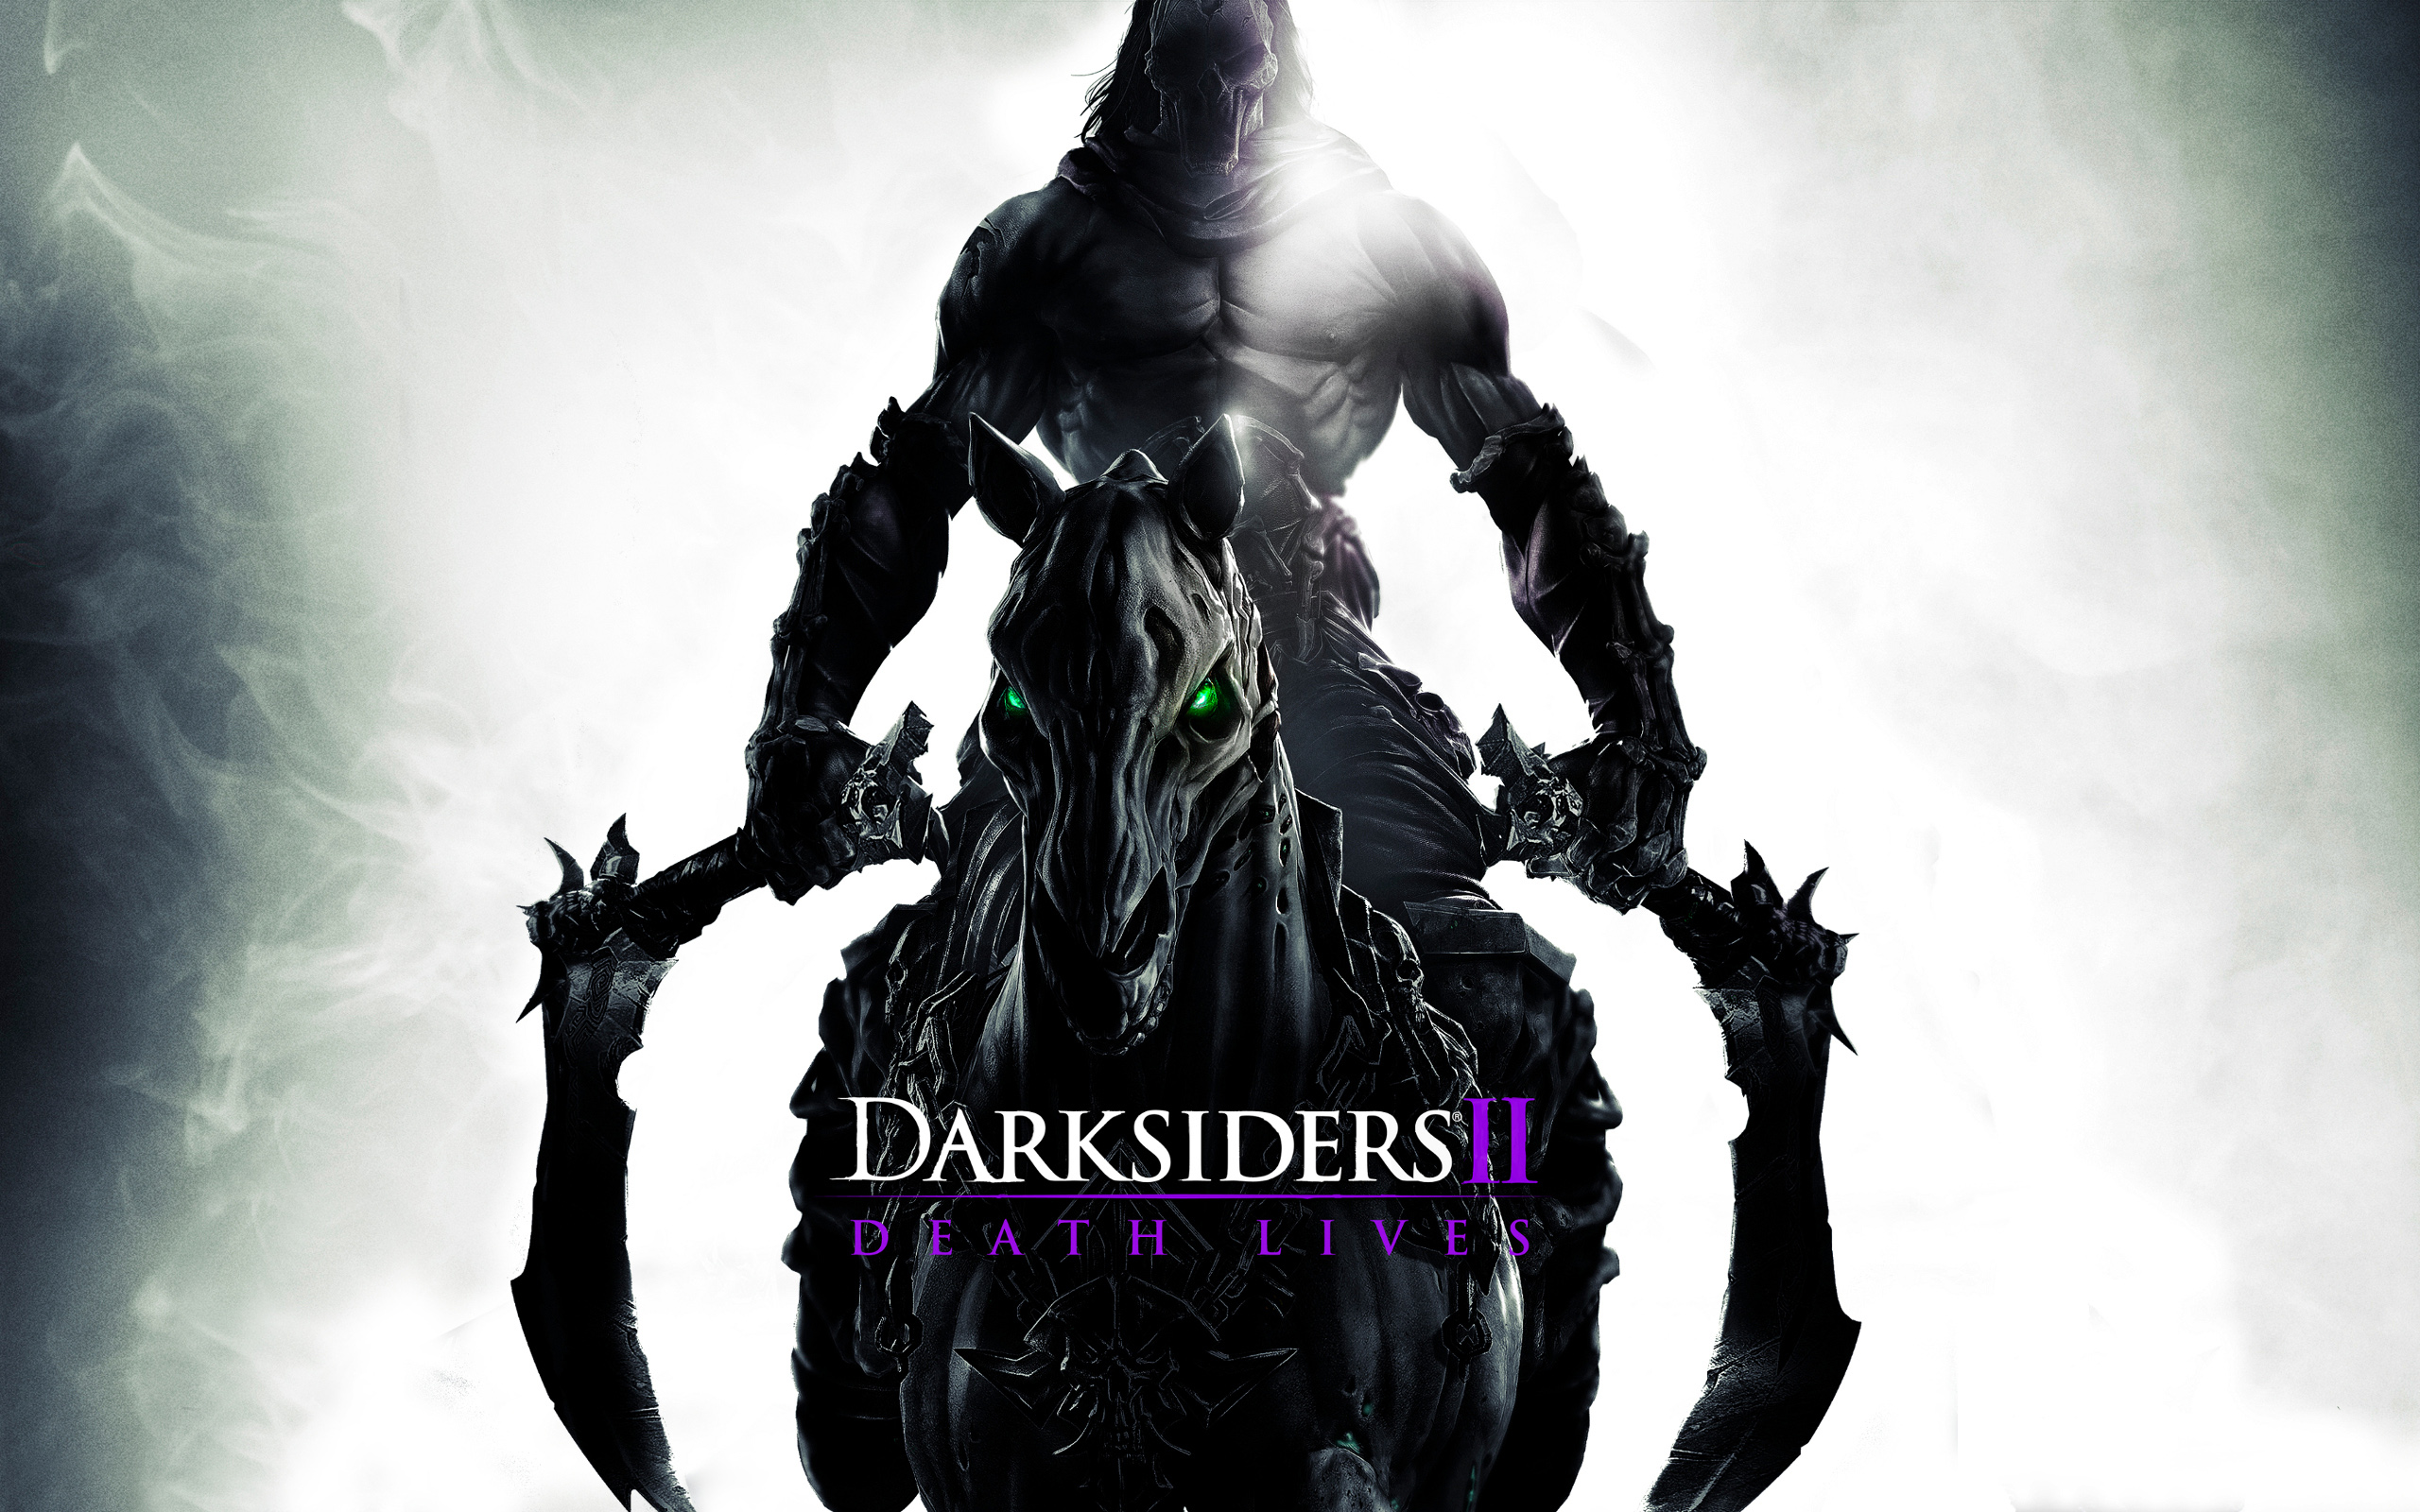 Horseman in Darksiders 2 537.24 Kb